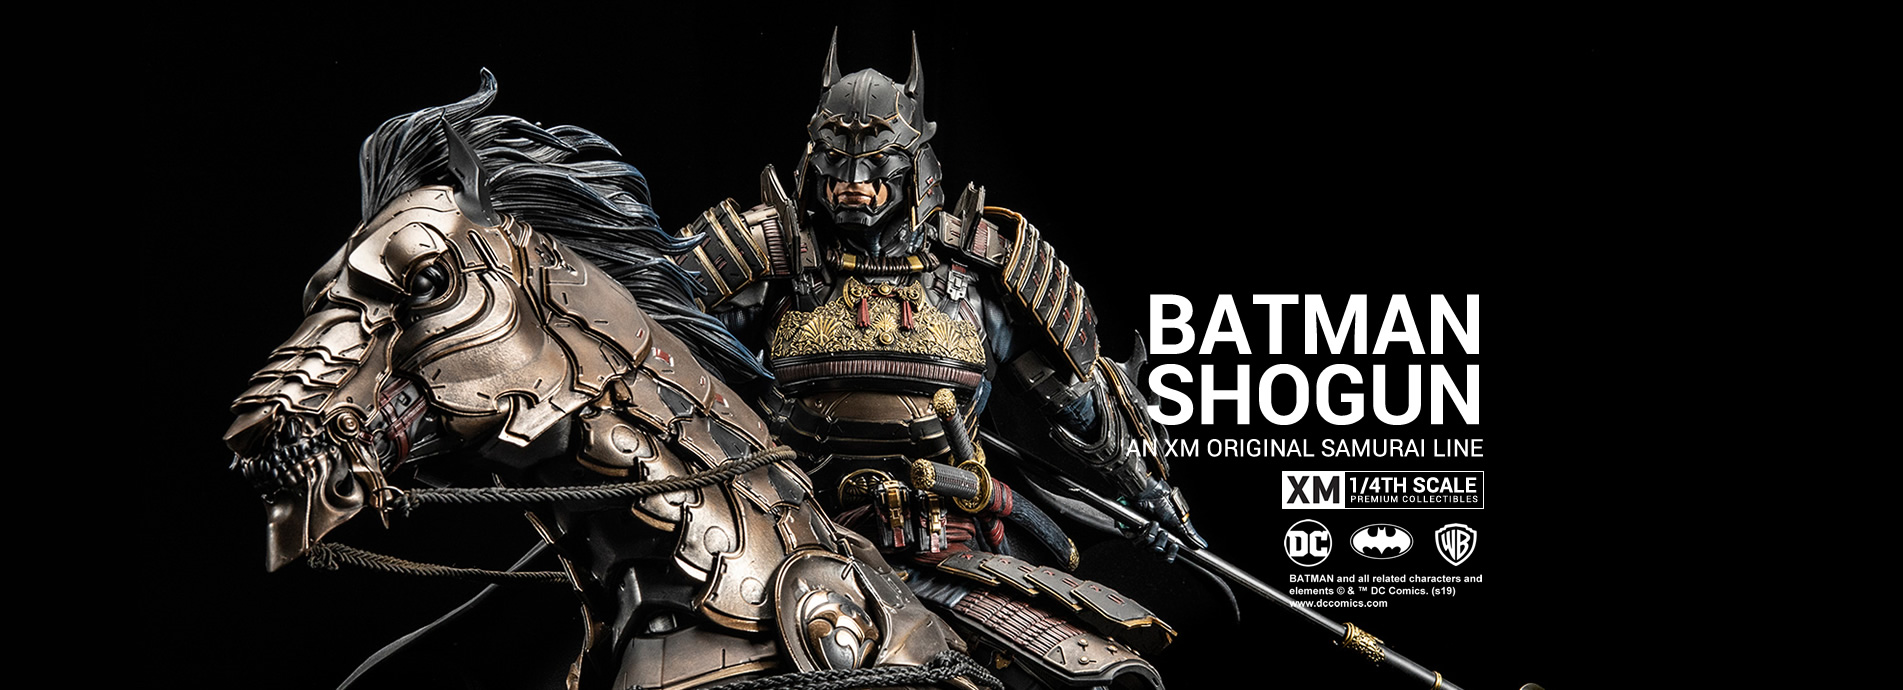 Batman Shogun